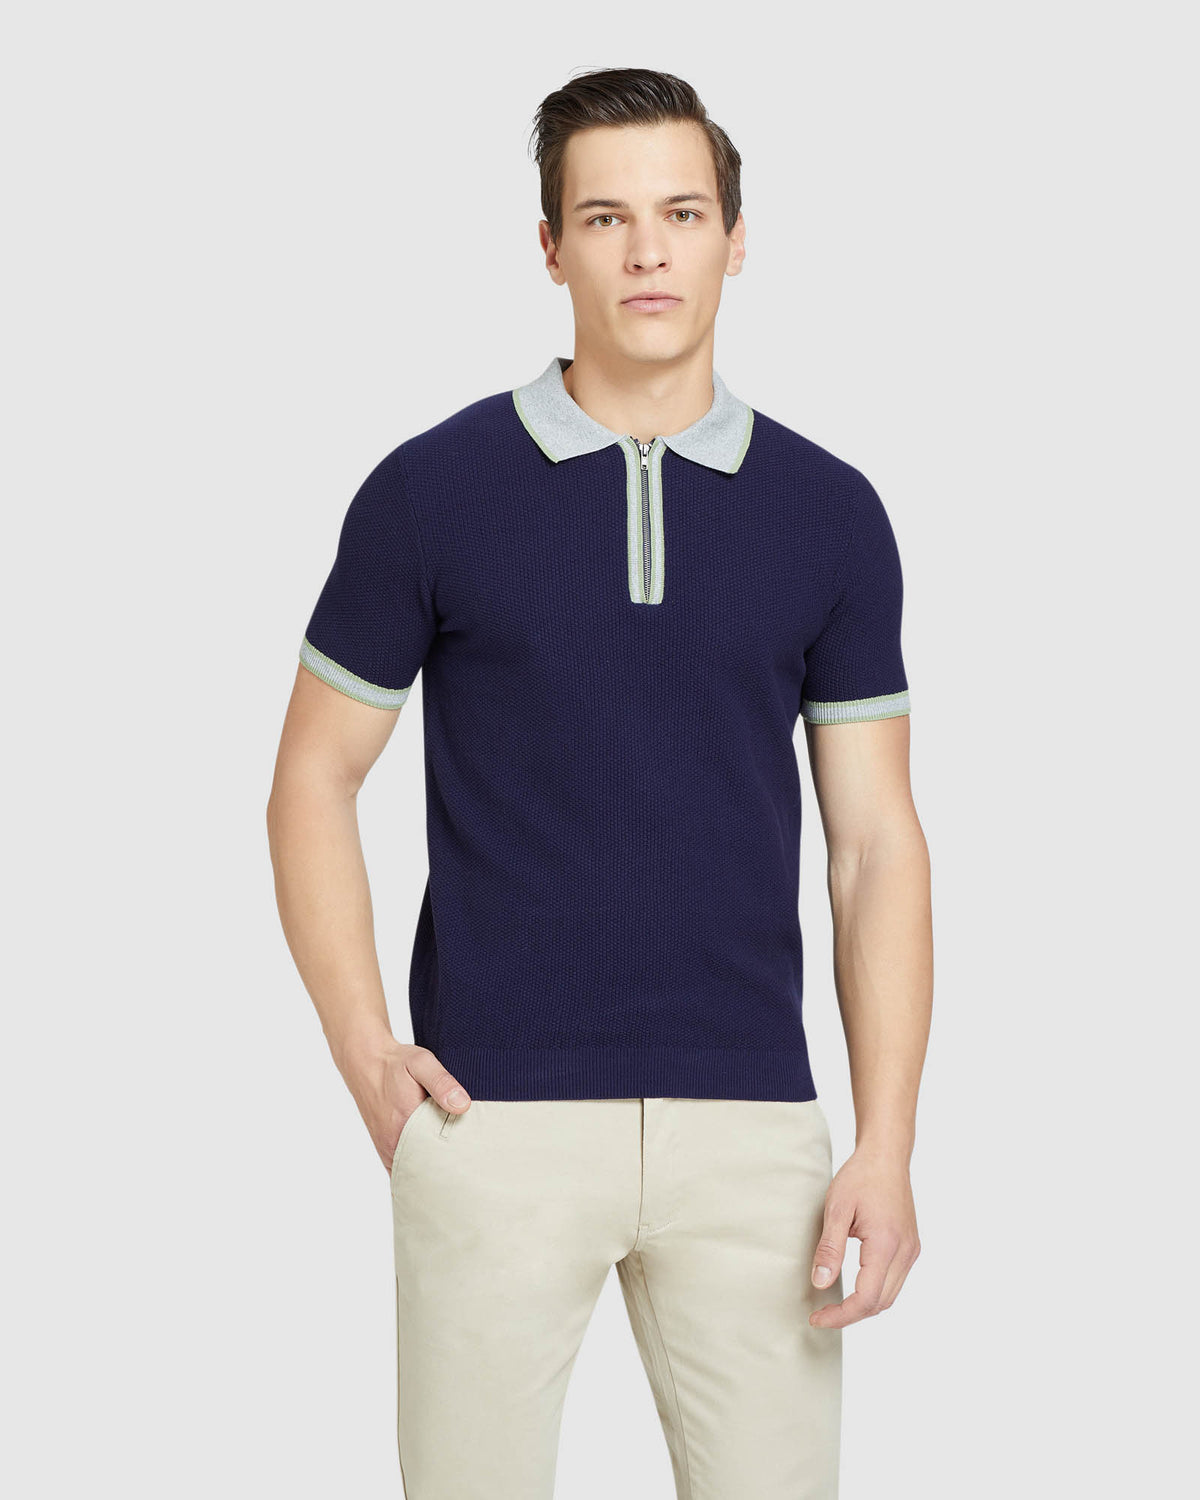 CONNELL POLO